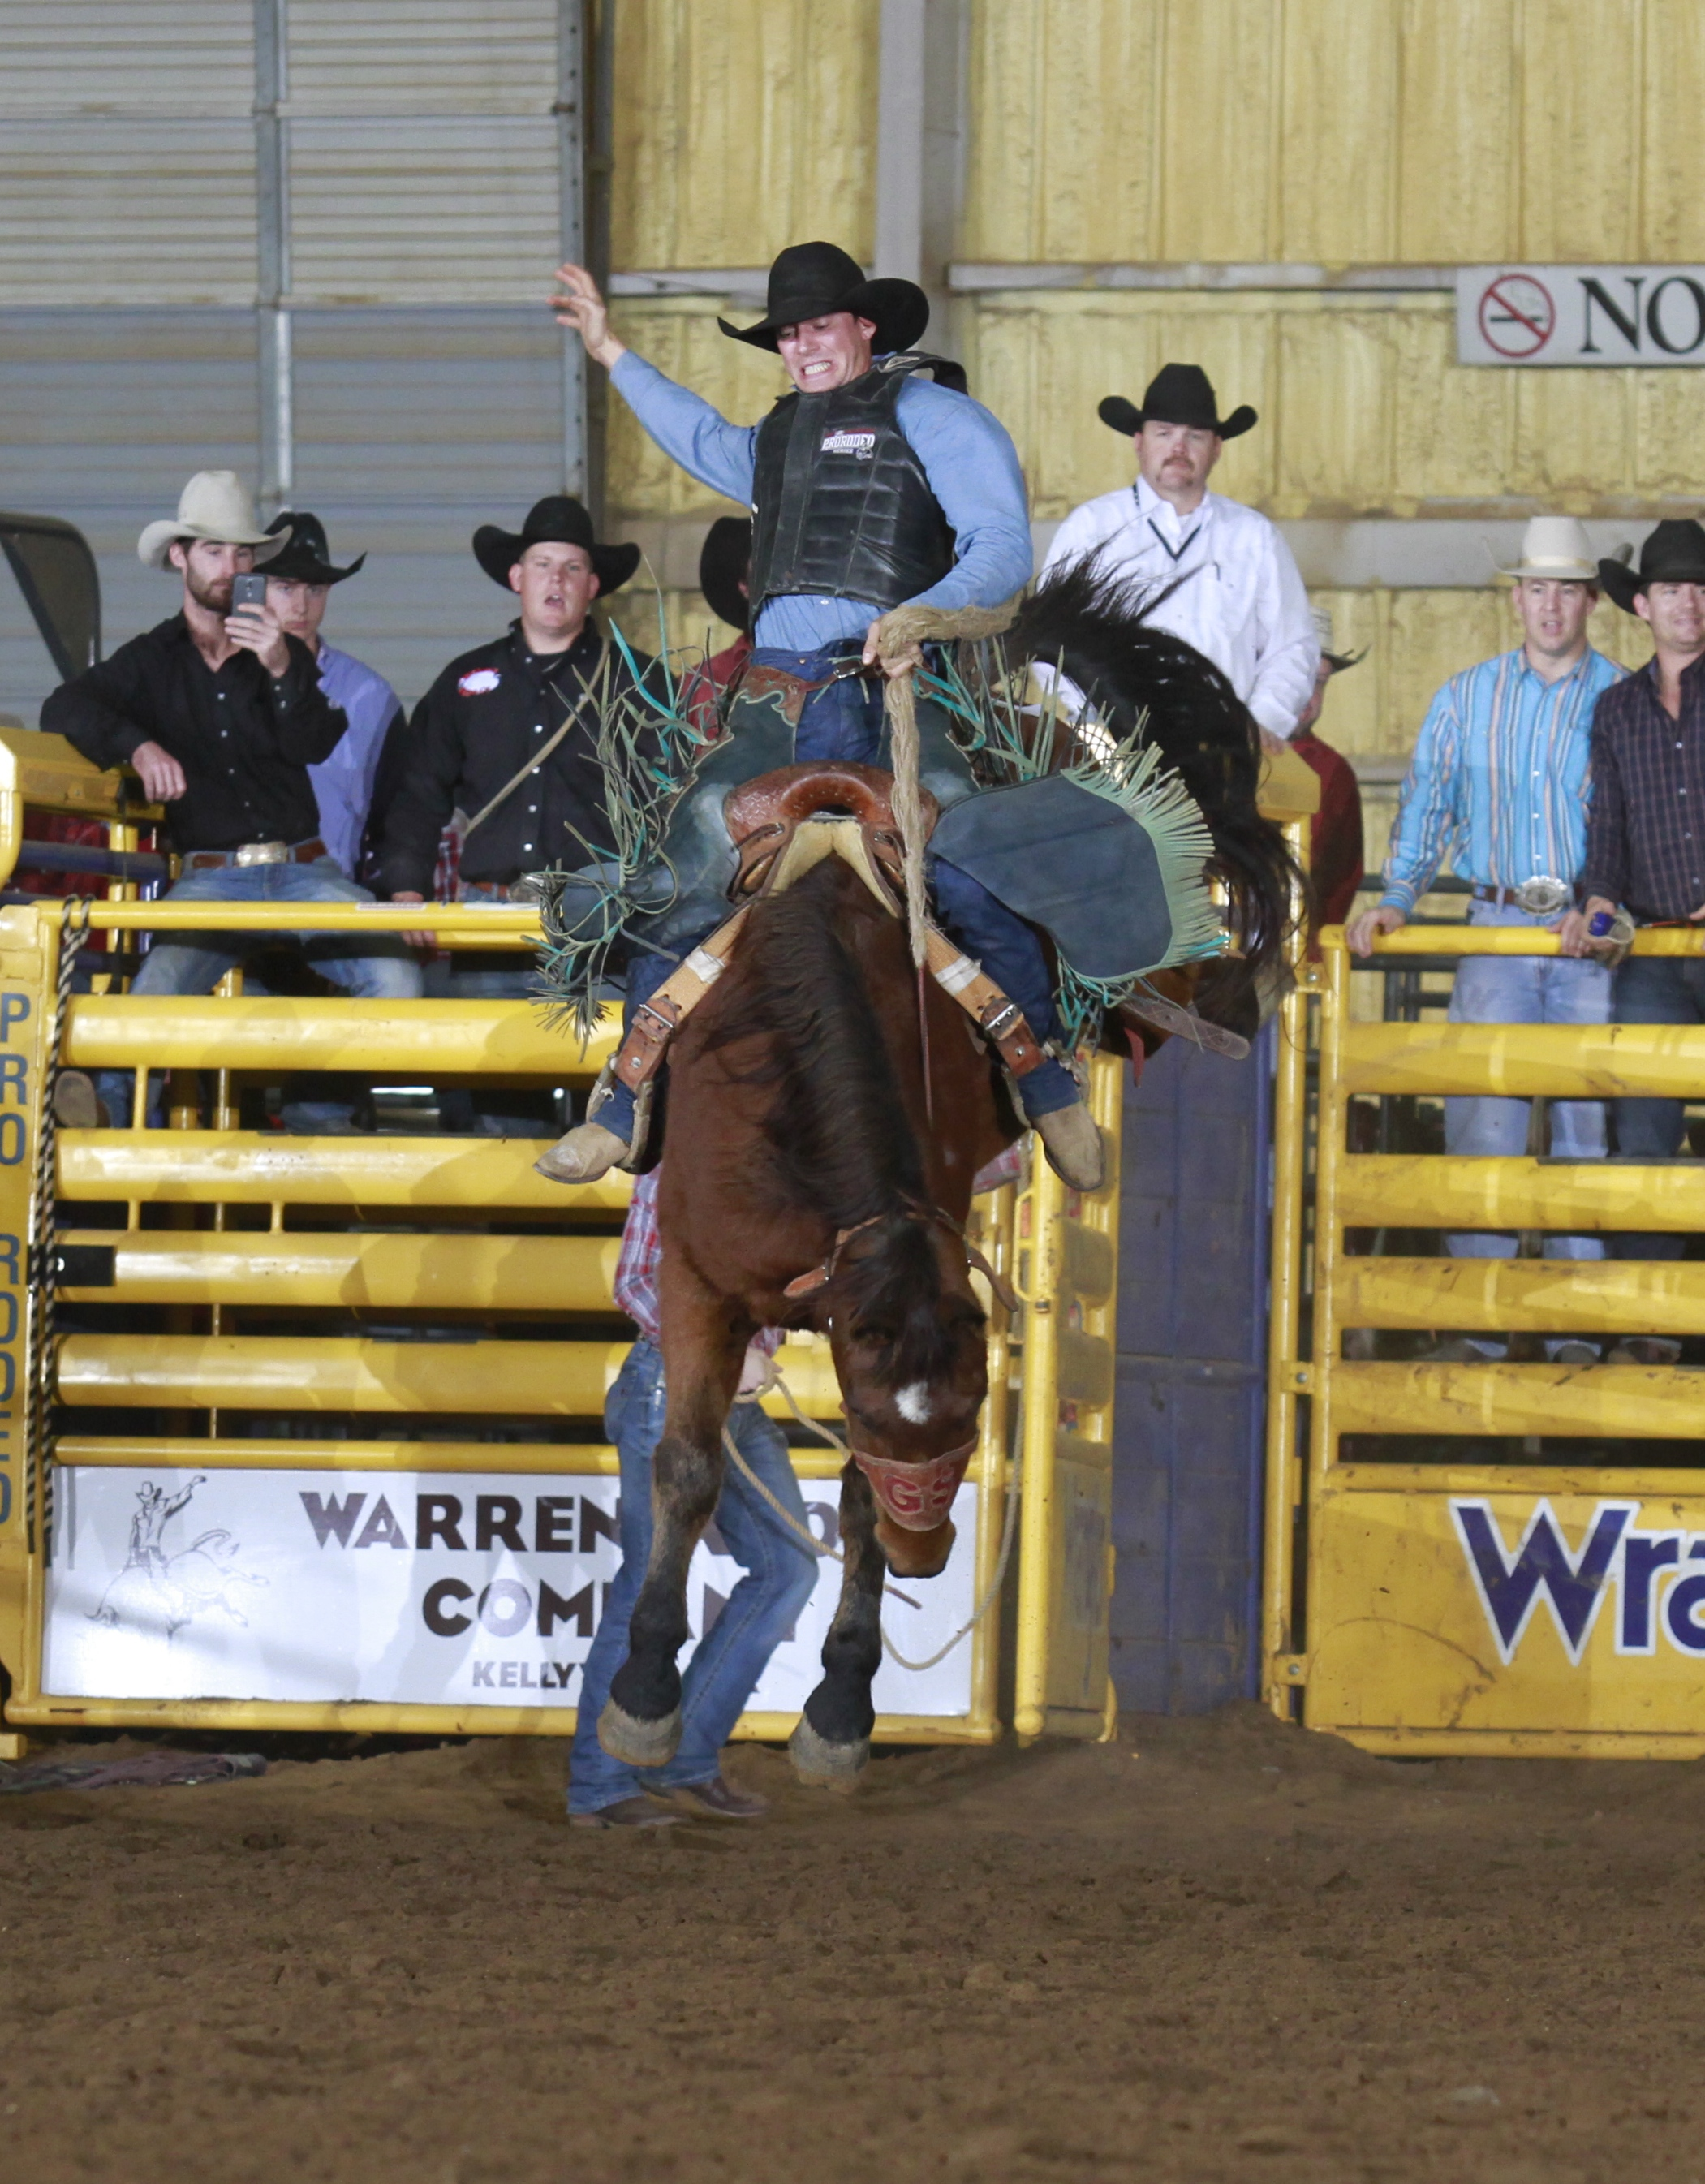 2017 Champion Saddle Bronc Rider - Cody Goertzen